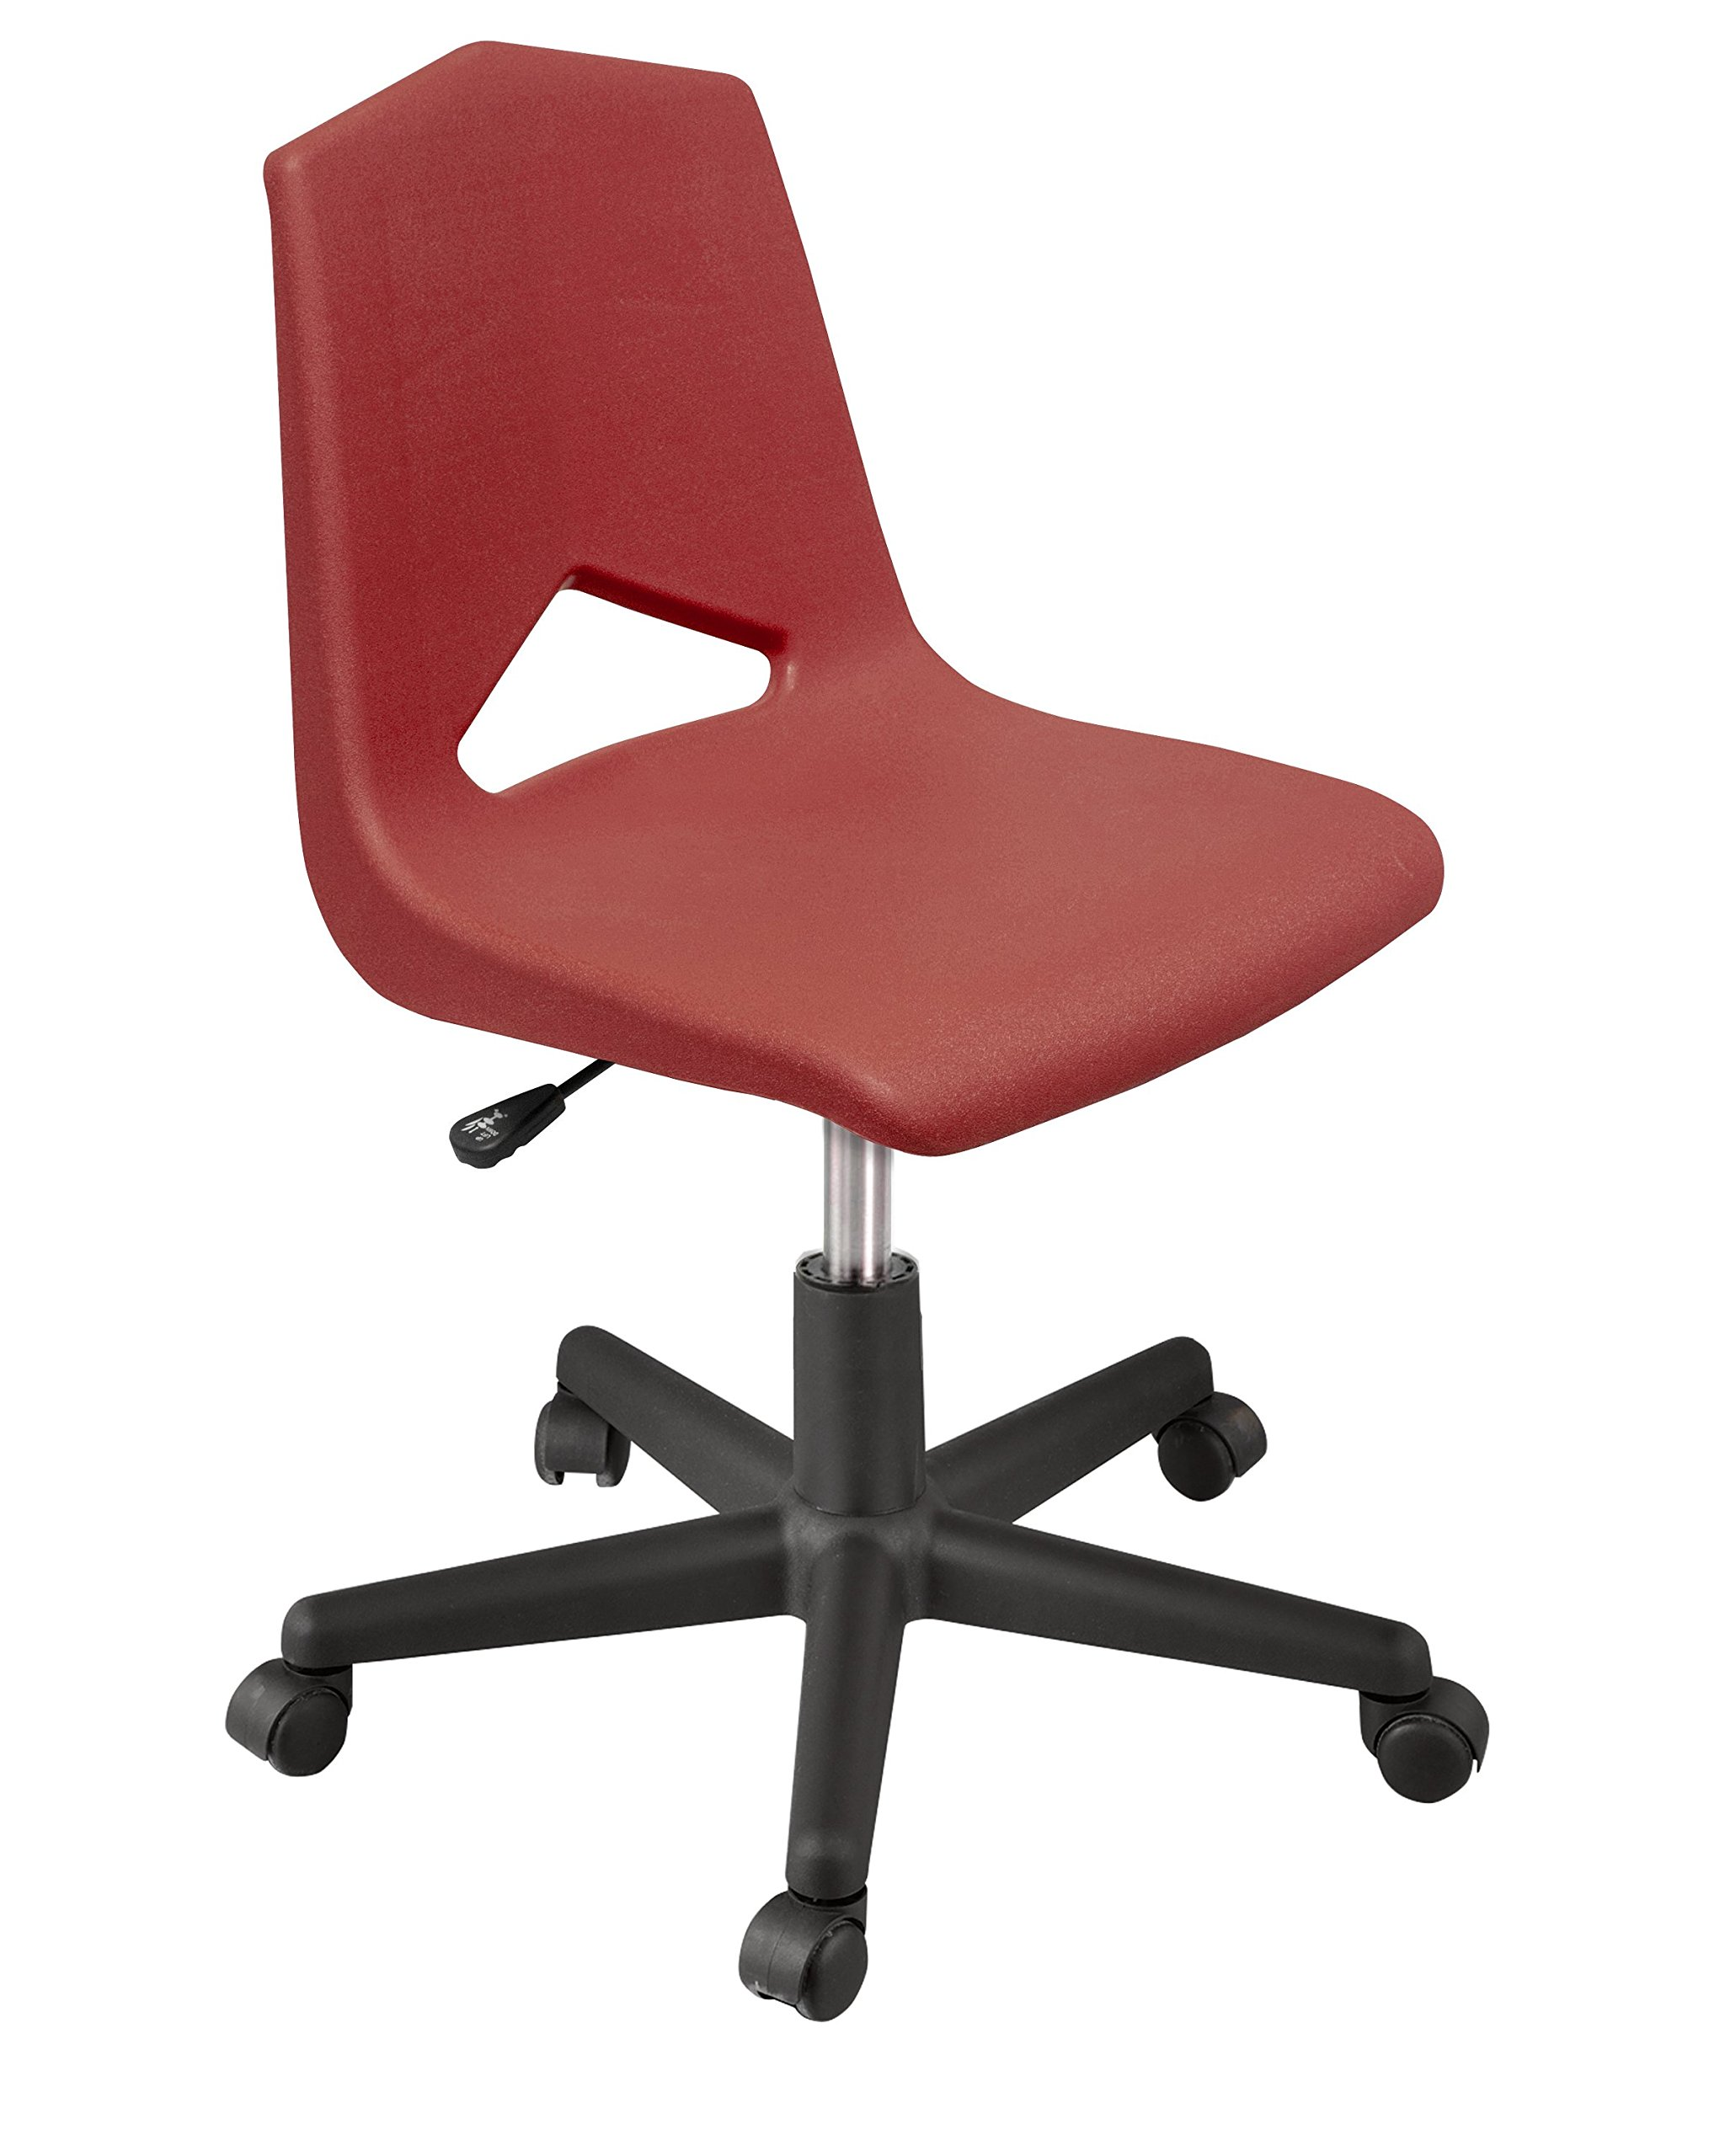 Marco Group MG1182-20BK-ABG Mg Series Adjustable Task Chair, 16''-20'', Burgandy/Black, 2''